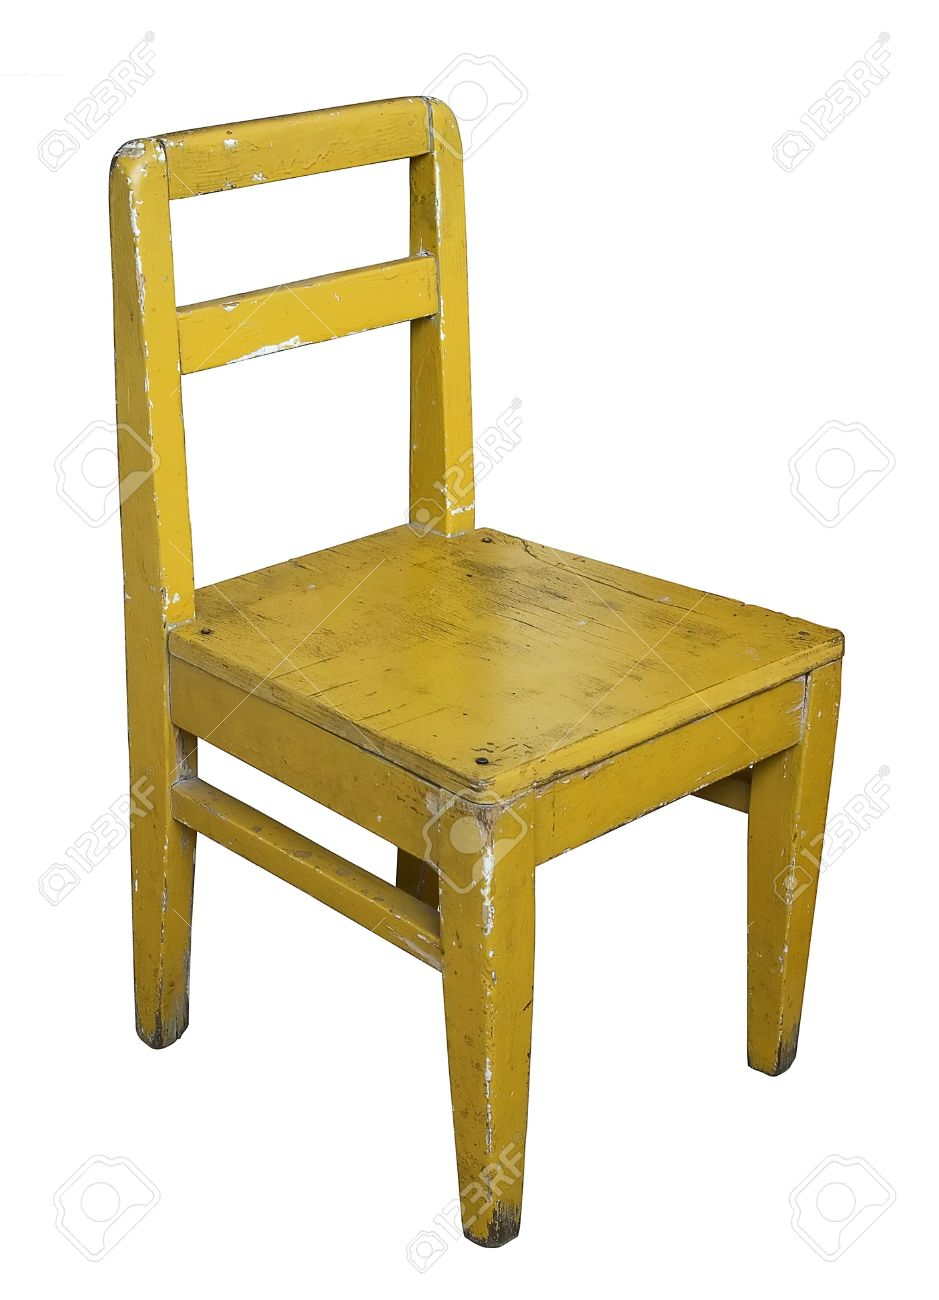 Awe Inspiring Small Old Painted Wooden Chair Isolated On White Home Interior And Landscaping Oversignezvosmurscom